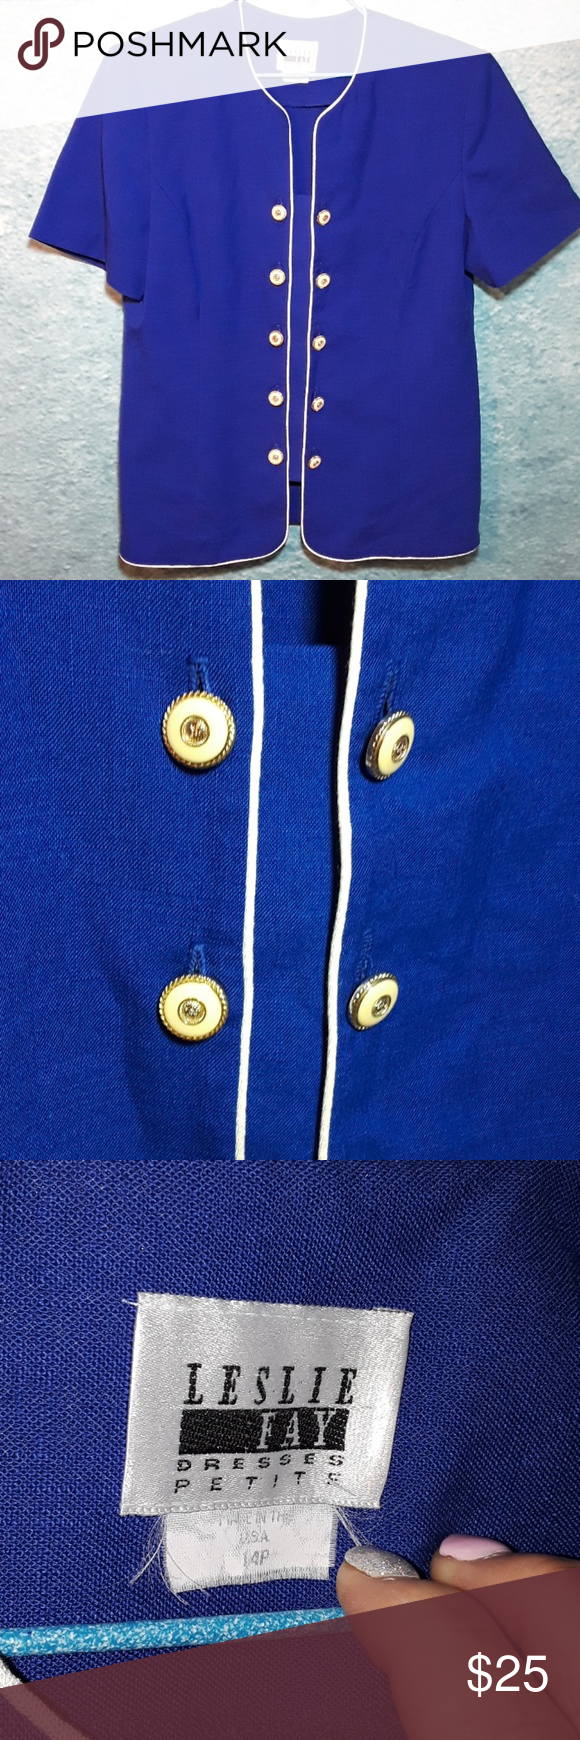 883b7f340c21 Vintage Leslie Fay embeshed blazer size 14P This gorgeous royal blue blazer  is by Leslie Fay